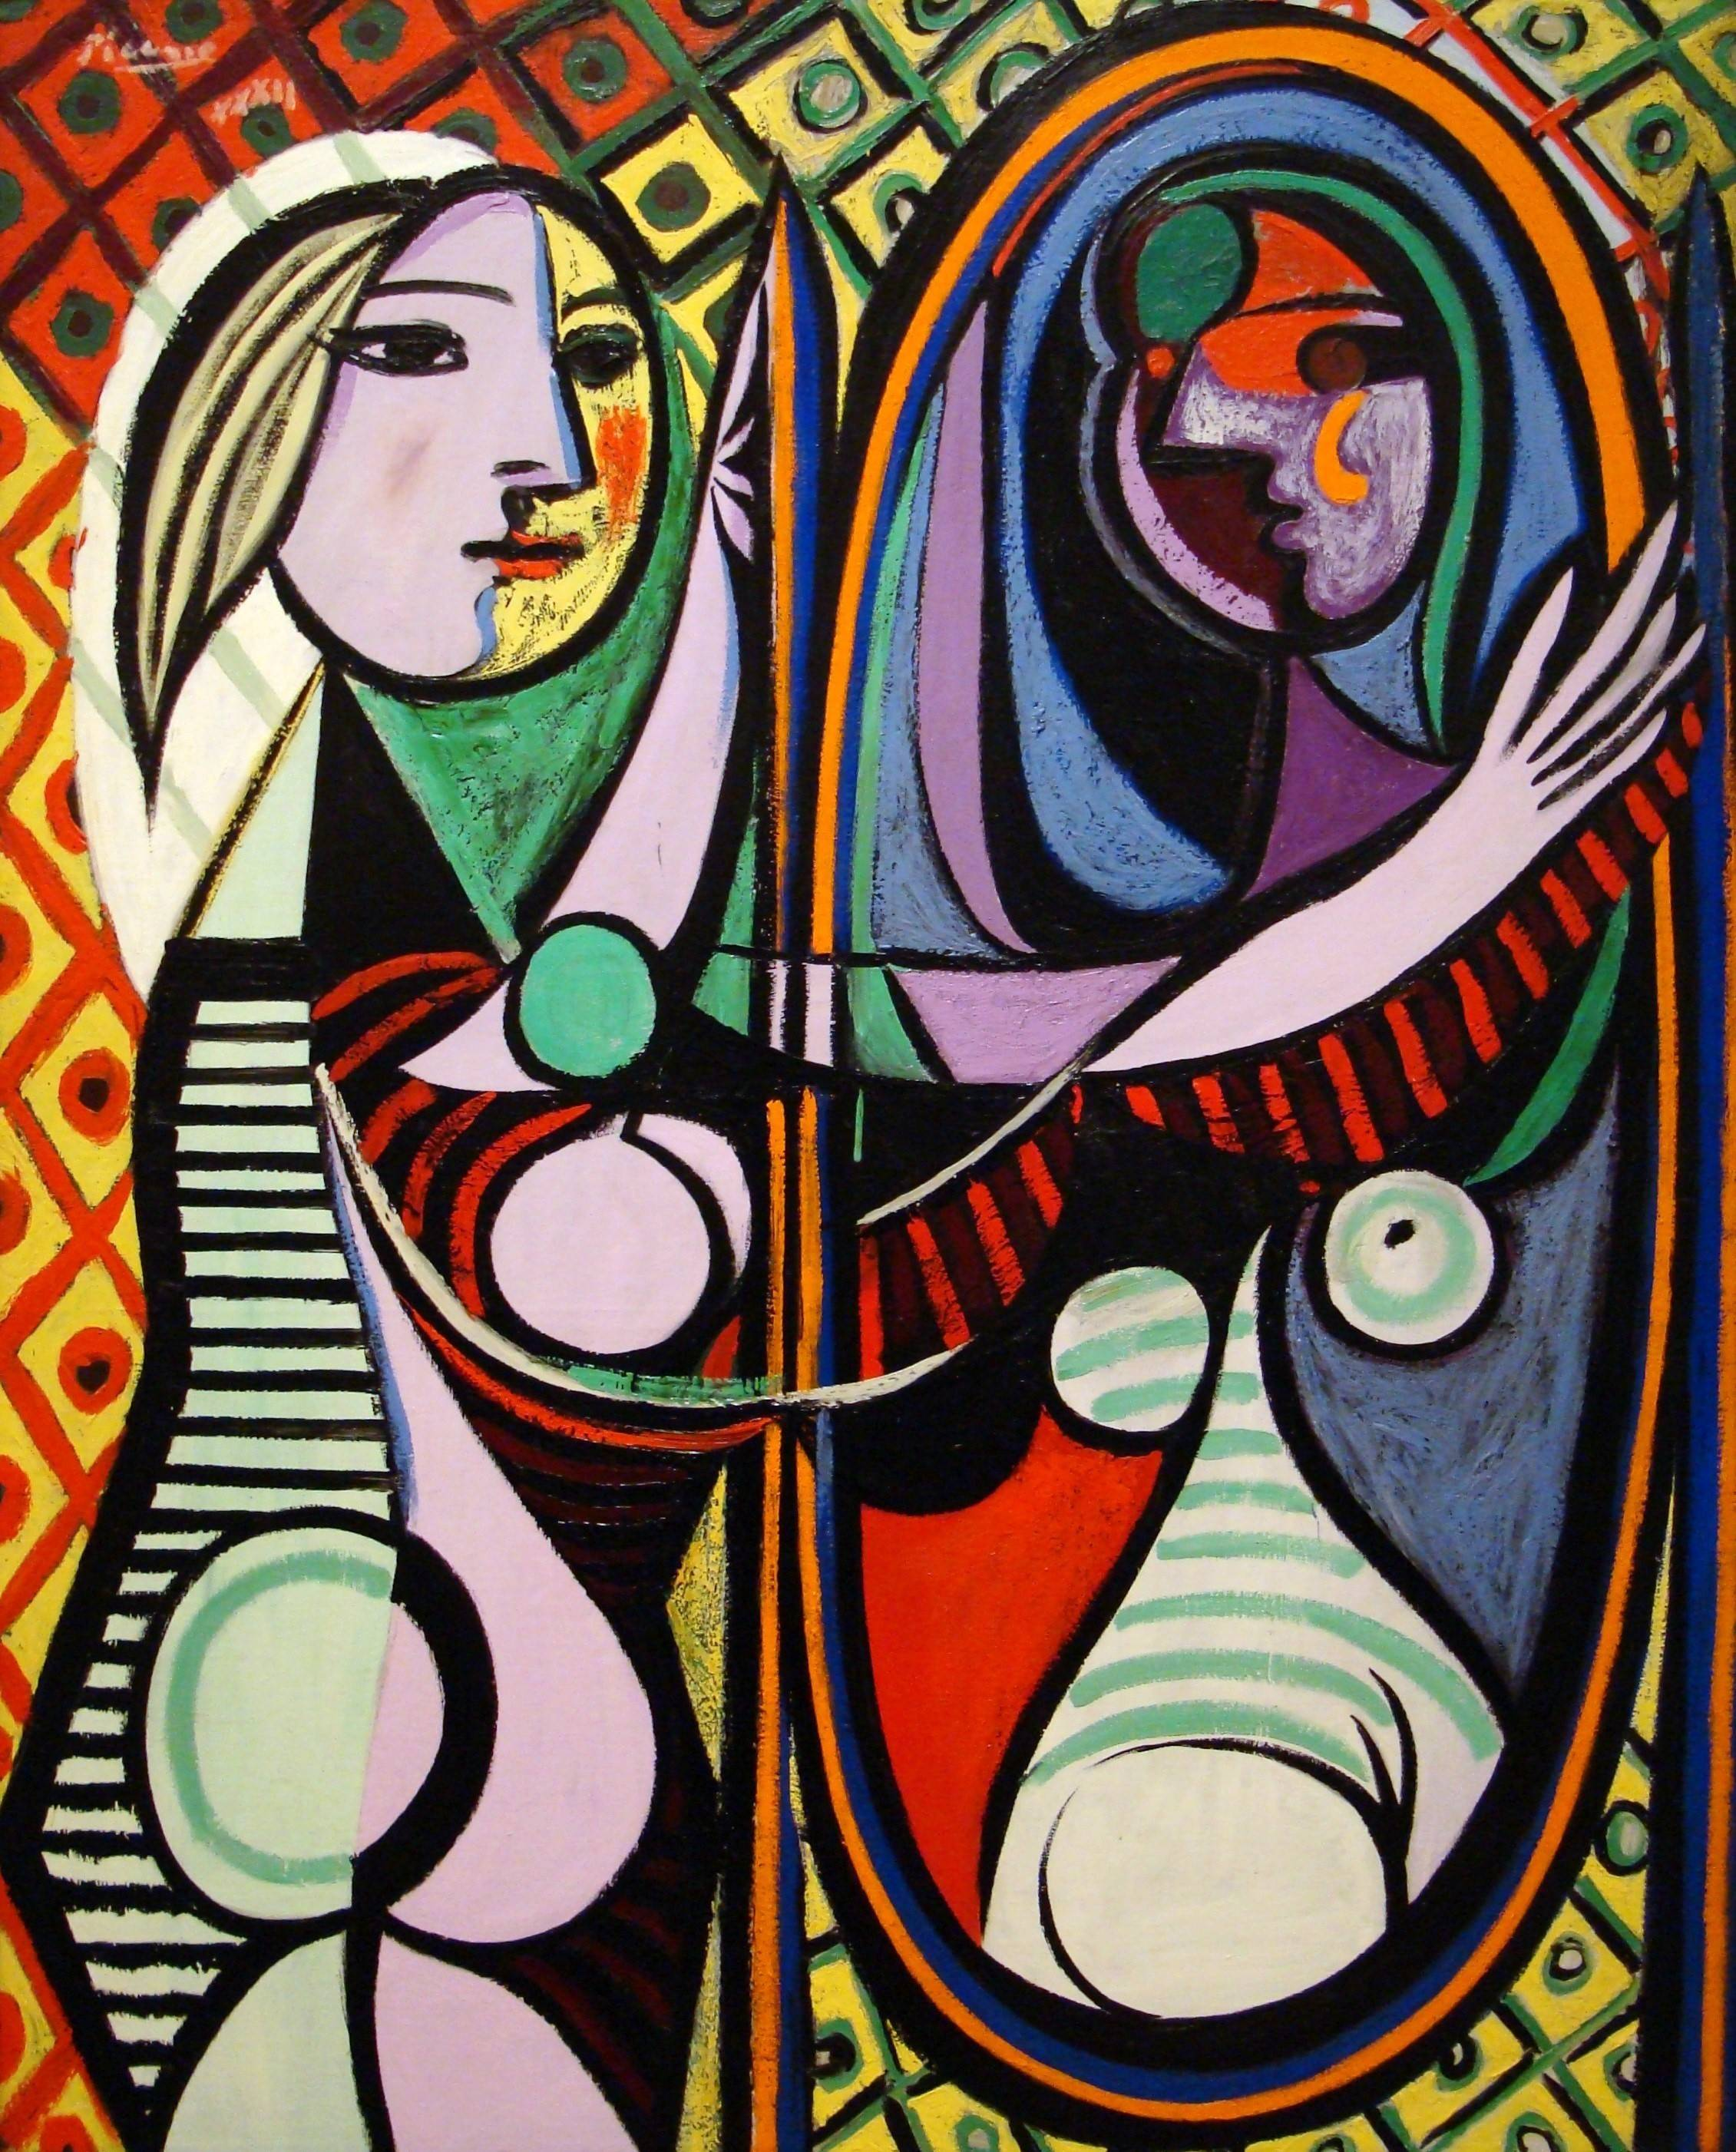 Picasso Paintings - Lessons - Tes Teach